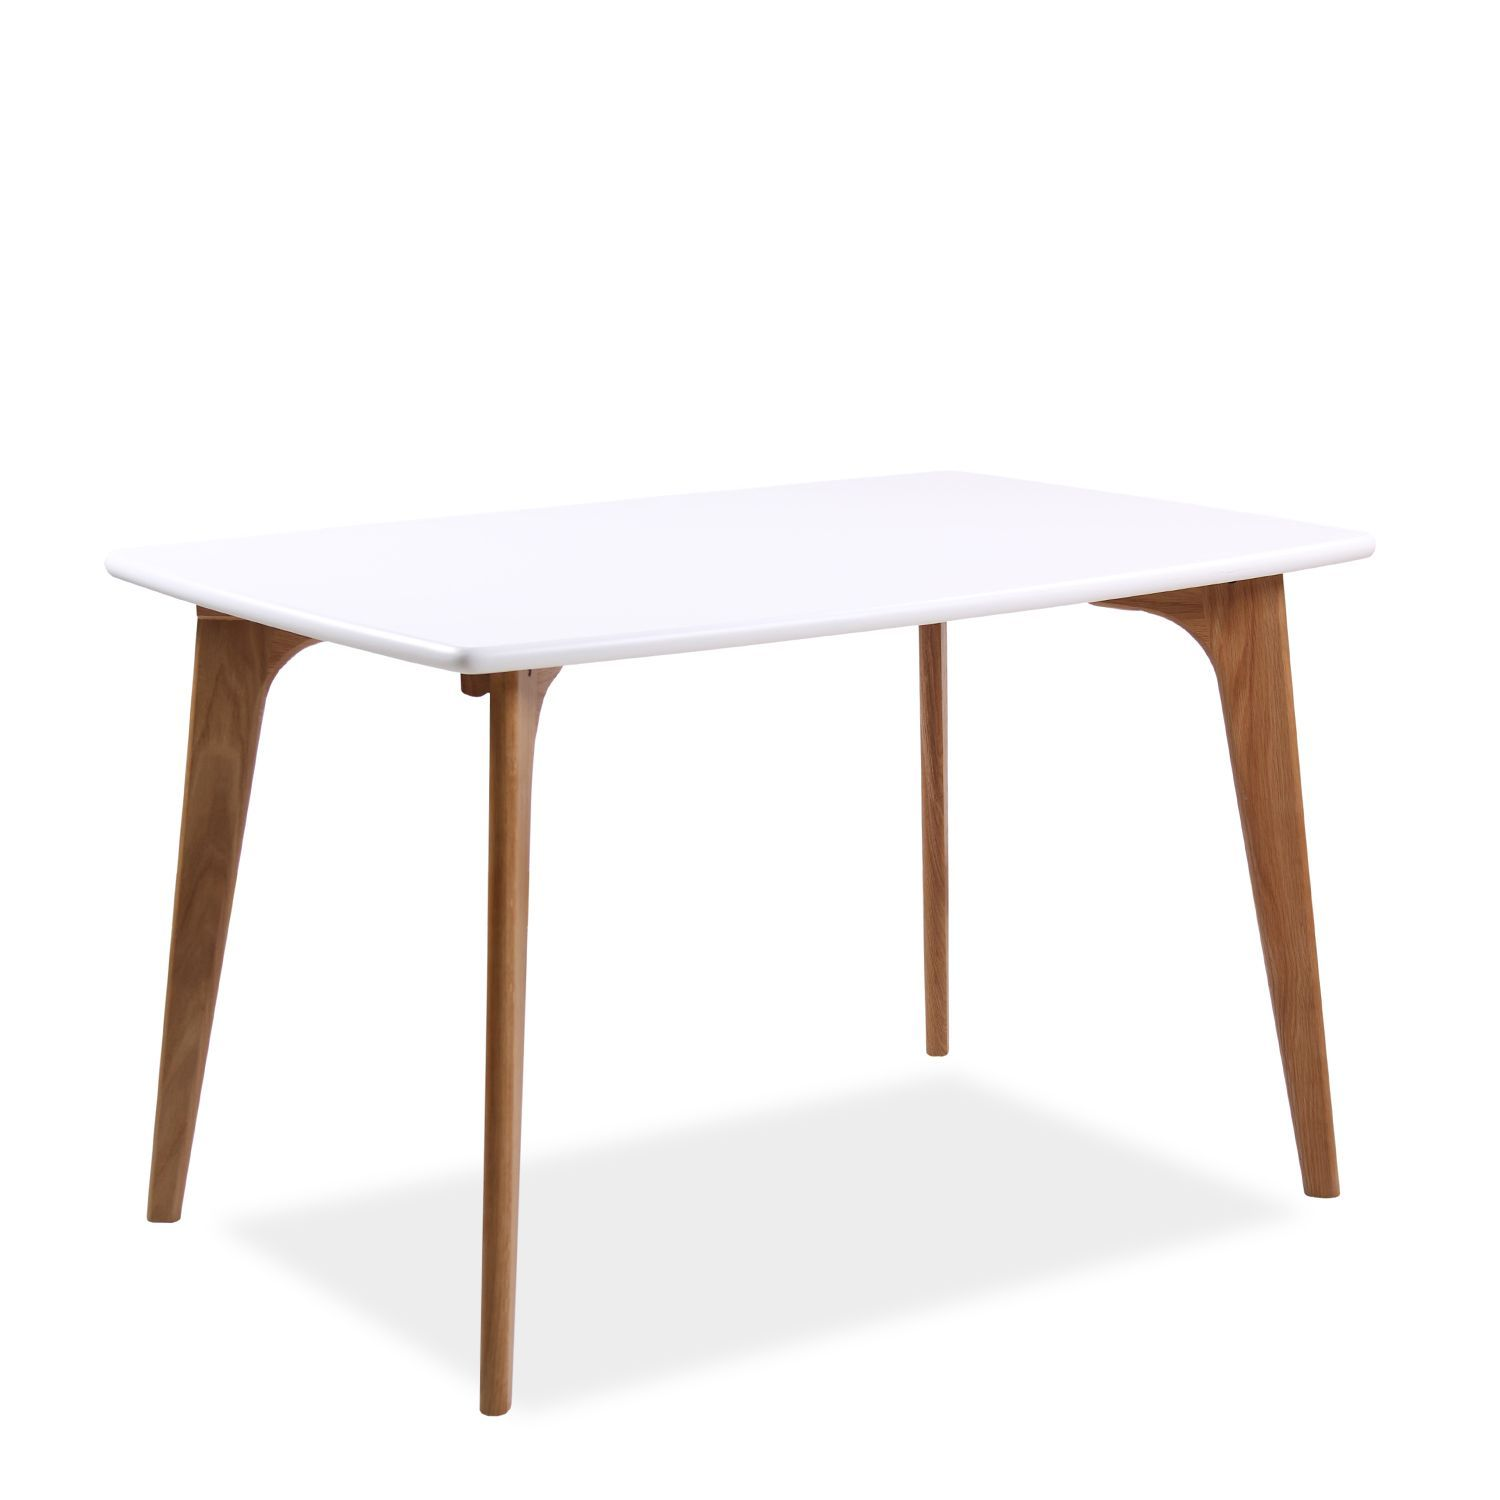 Frais Table Scandinave Ronde